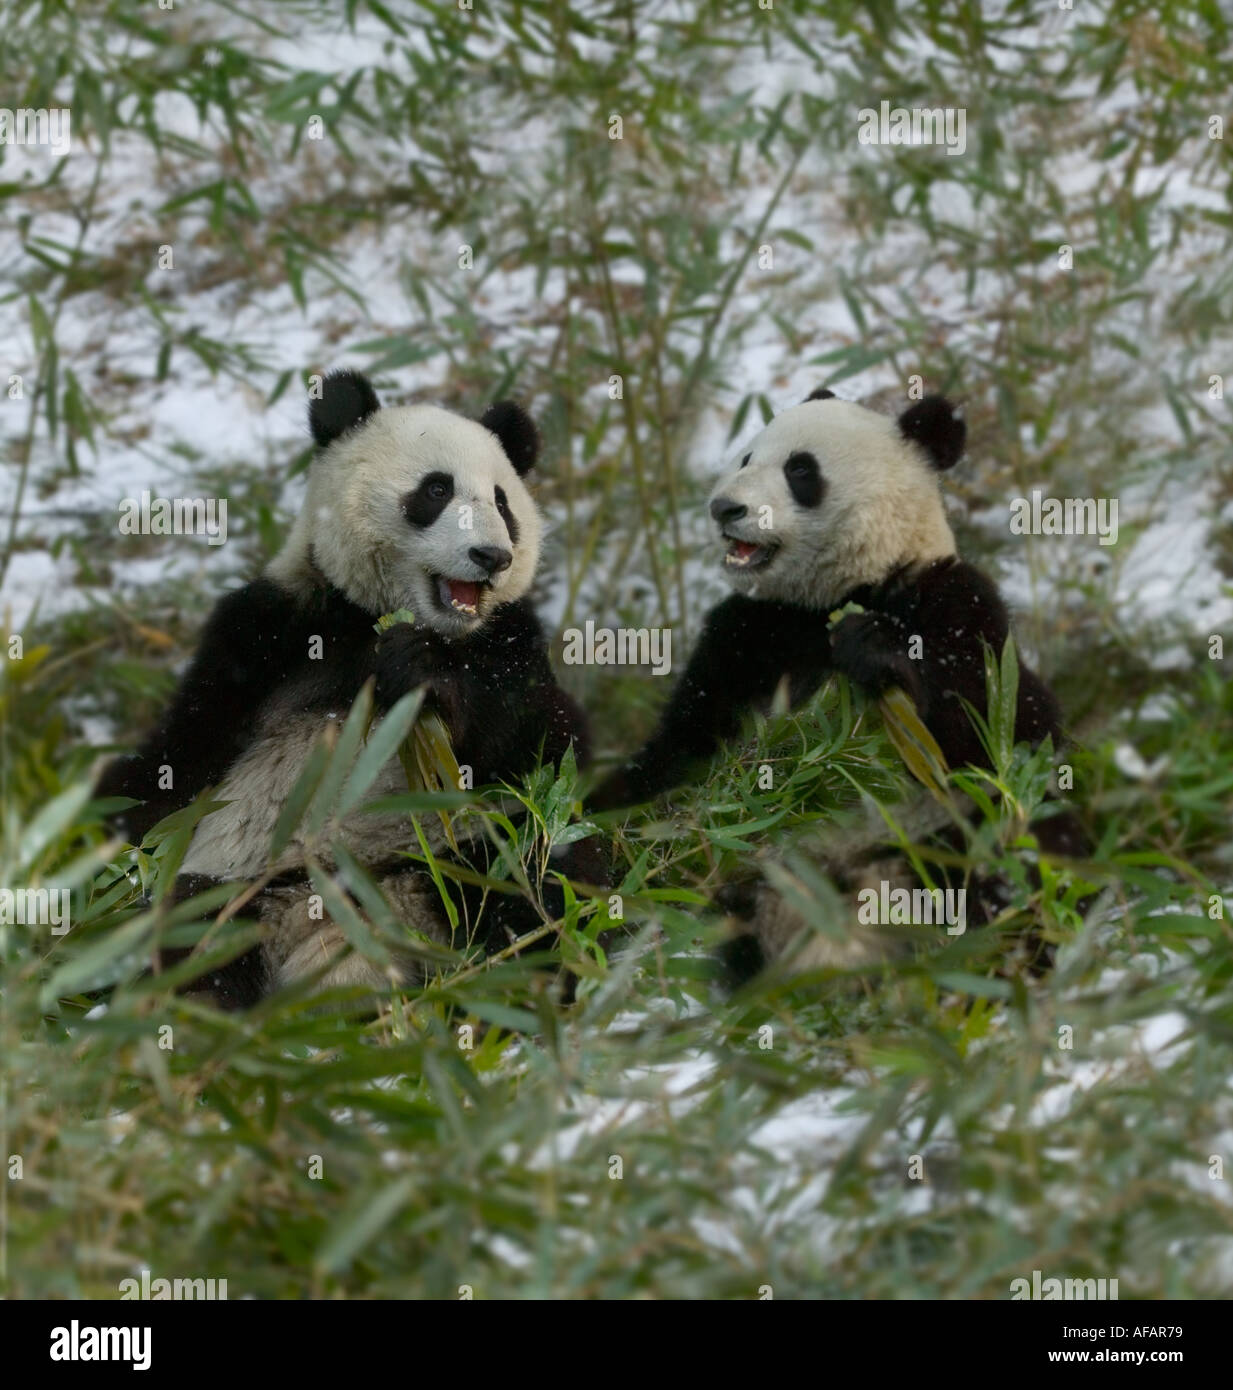 a17aff5ee37 Two Giant pandas eating bamboo in snow Wolong Panda Reserve Sichuan  Province China - Stock Image